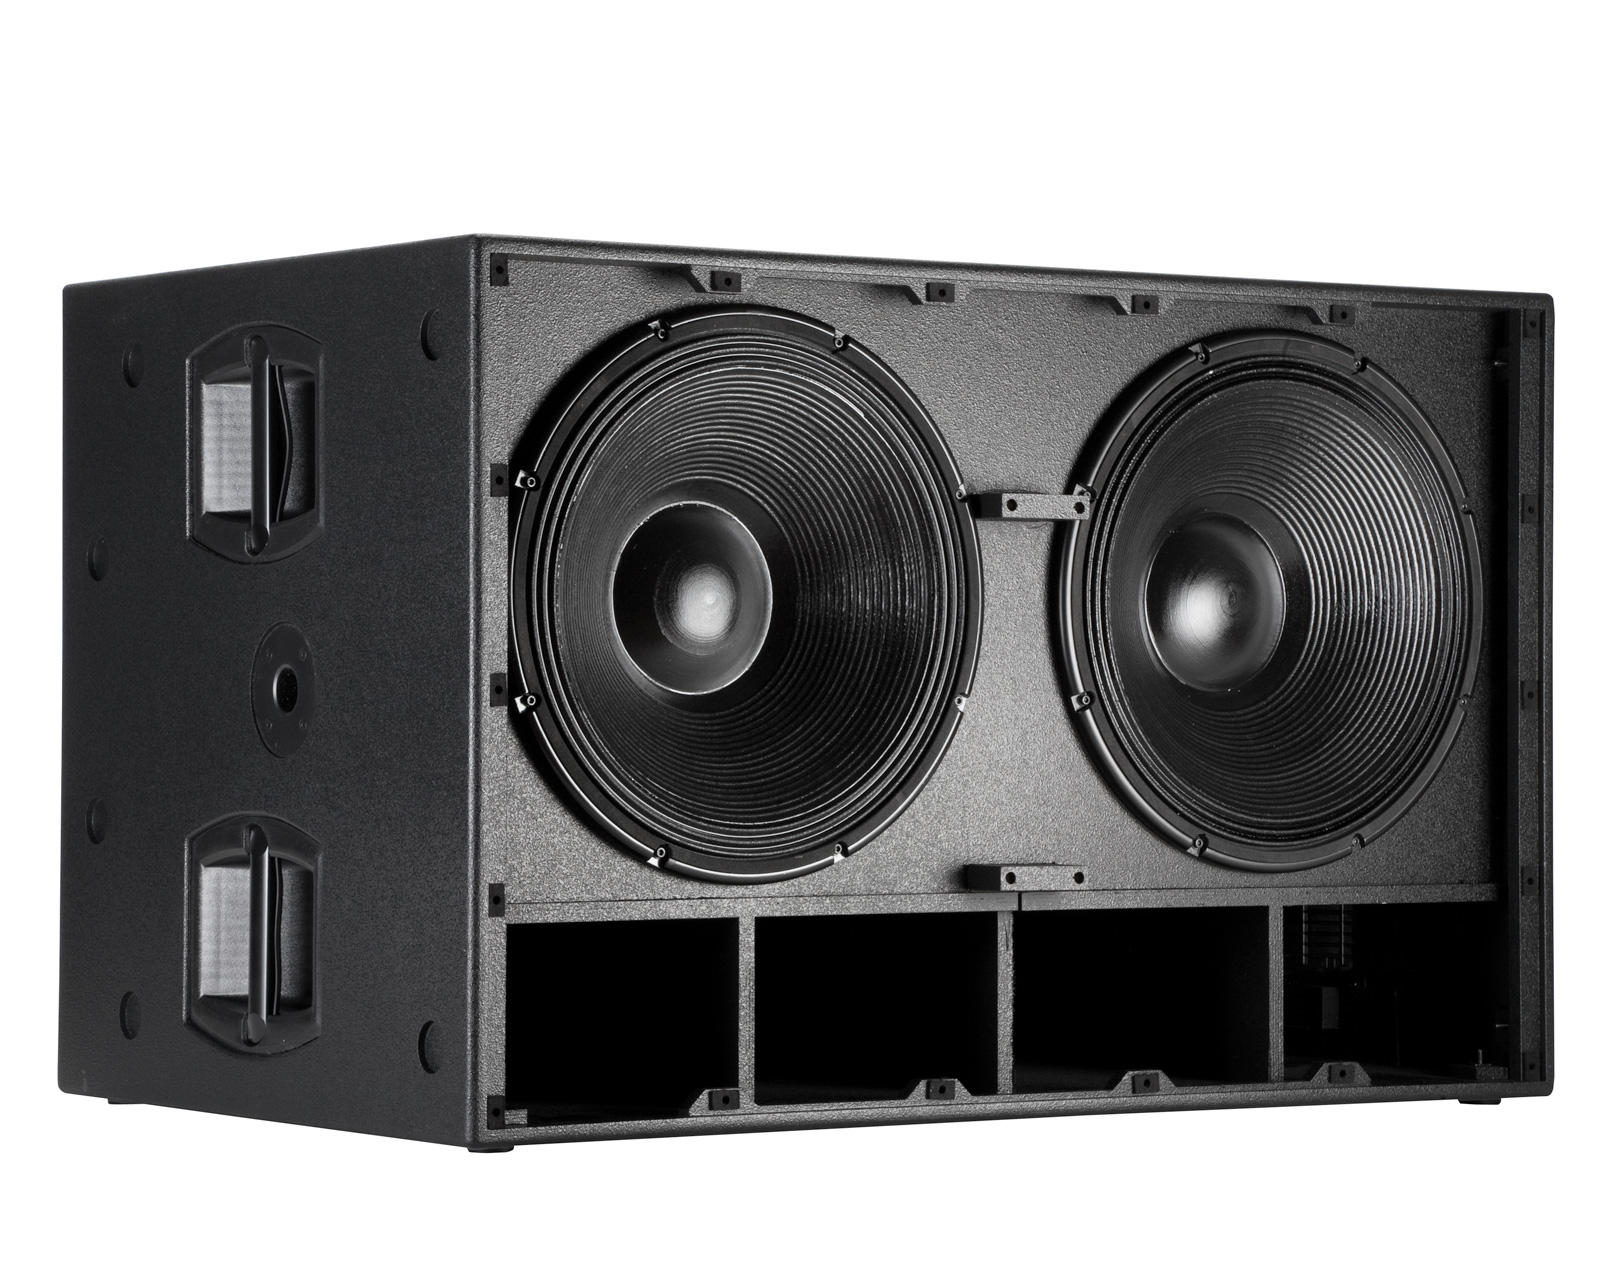 20 Inch Subwoofer: RCF Sub 8006-A Active High Power 18-Inch 5000 Watts